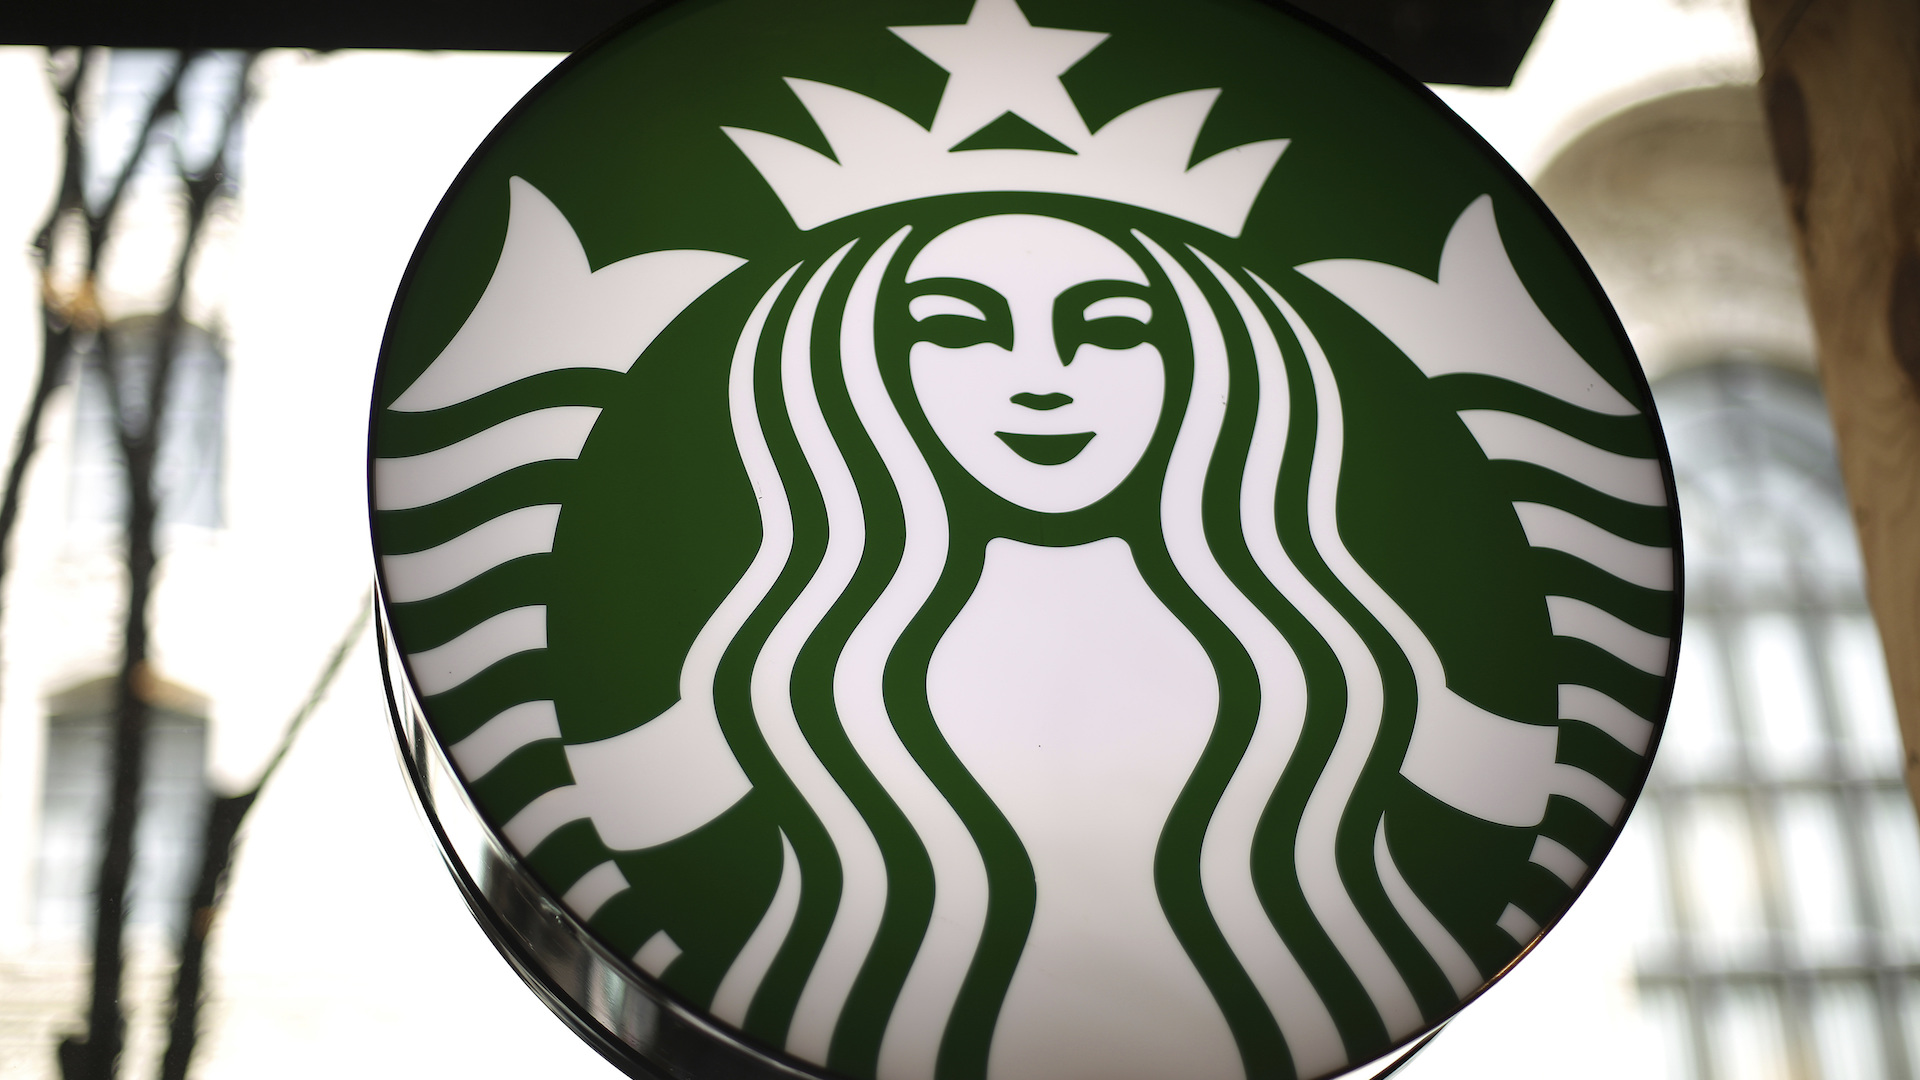 Starbucks: You don't have to buy coffee to sit in our cafes or use our restrooms